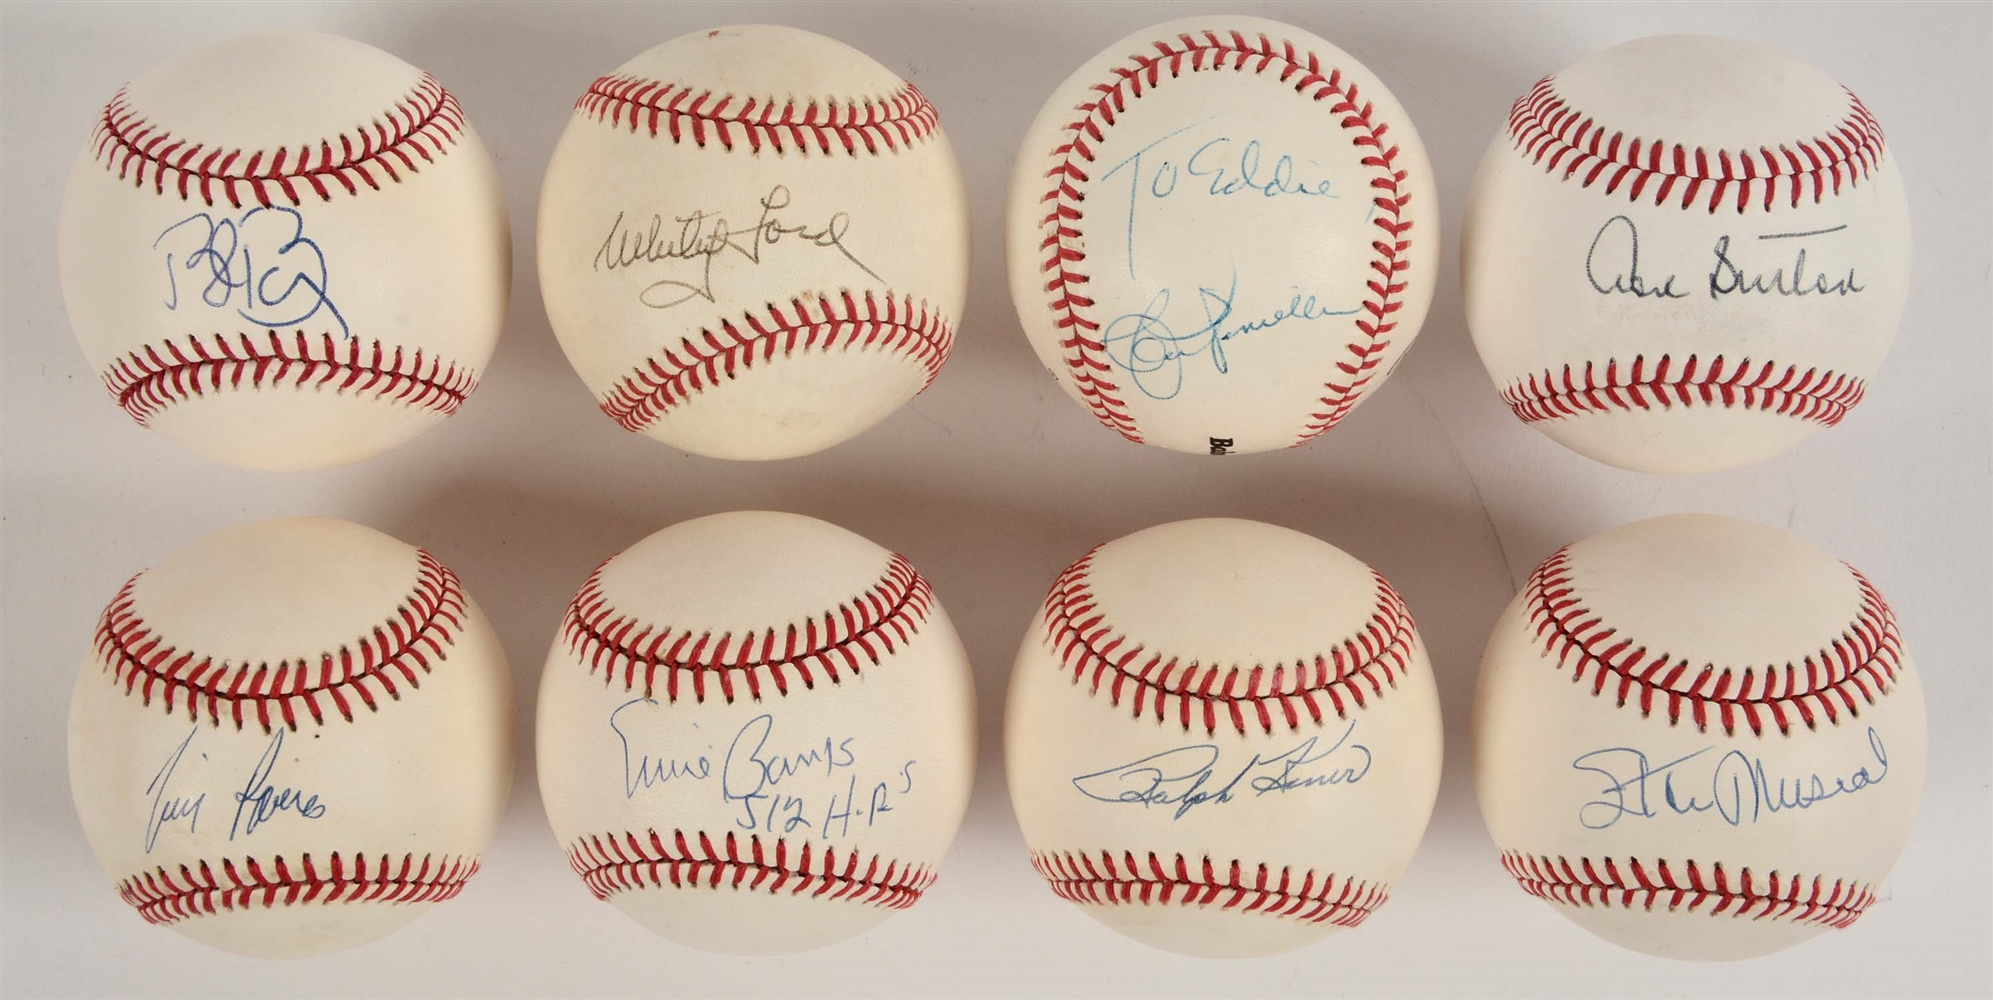 Lot of 8: Single Signed Baseballs Including Musial, Banks & Ford.